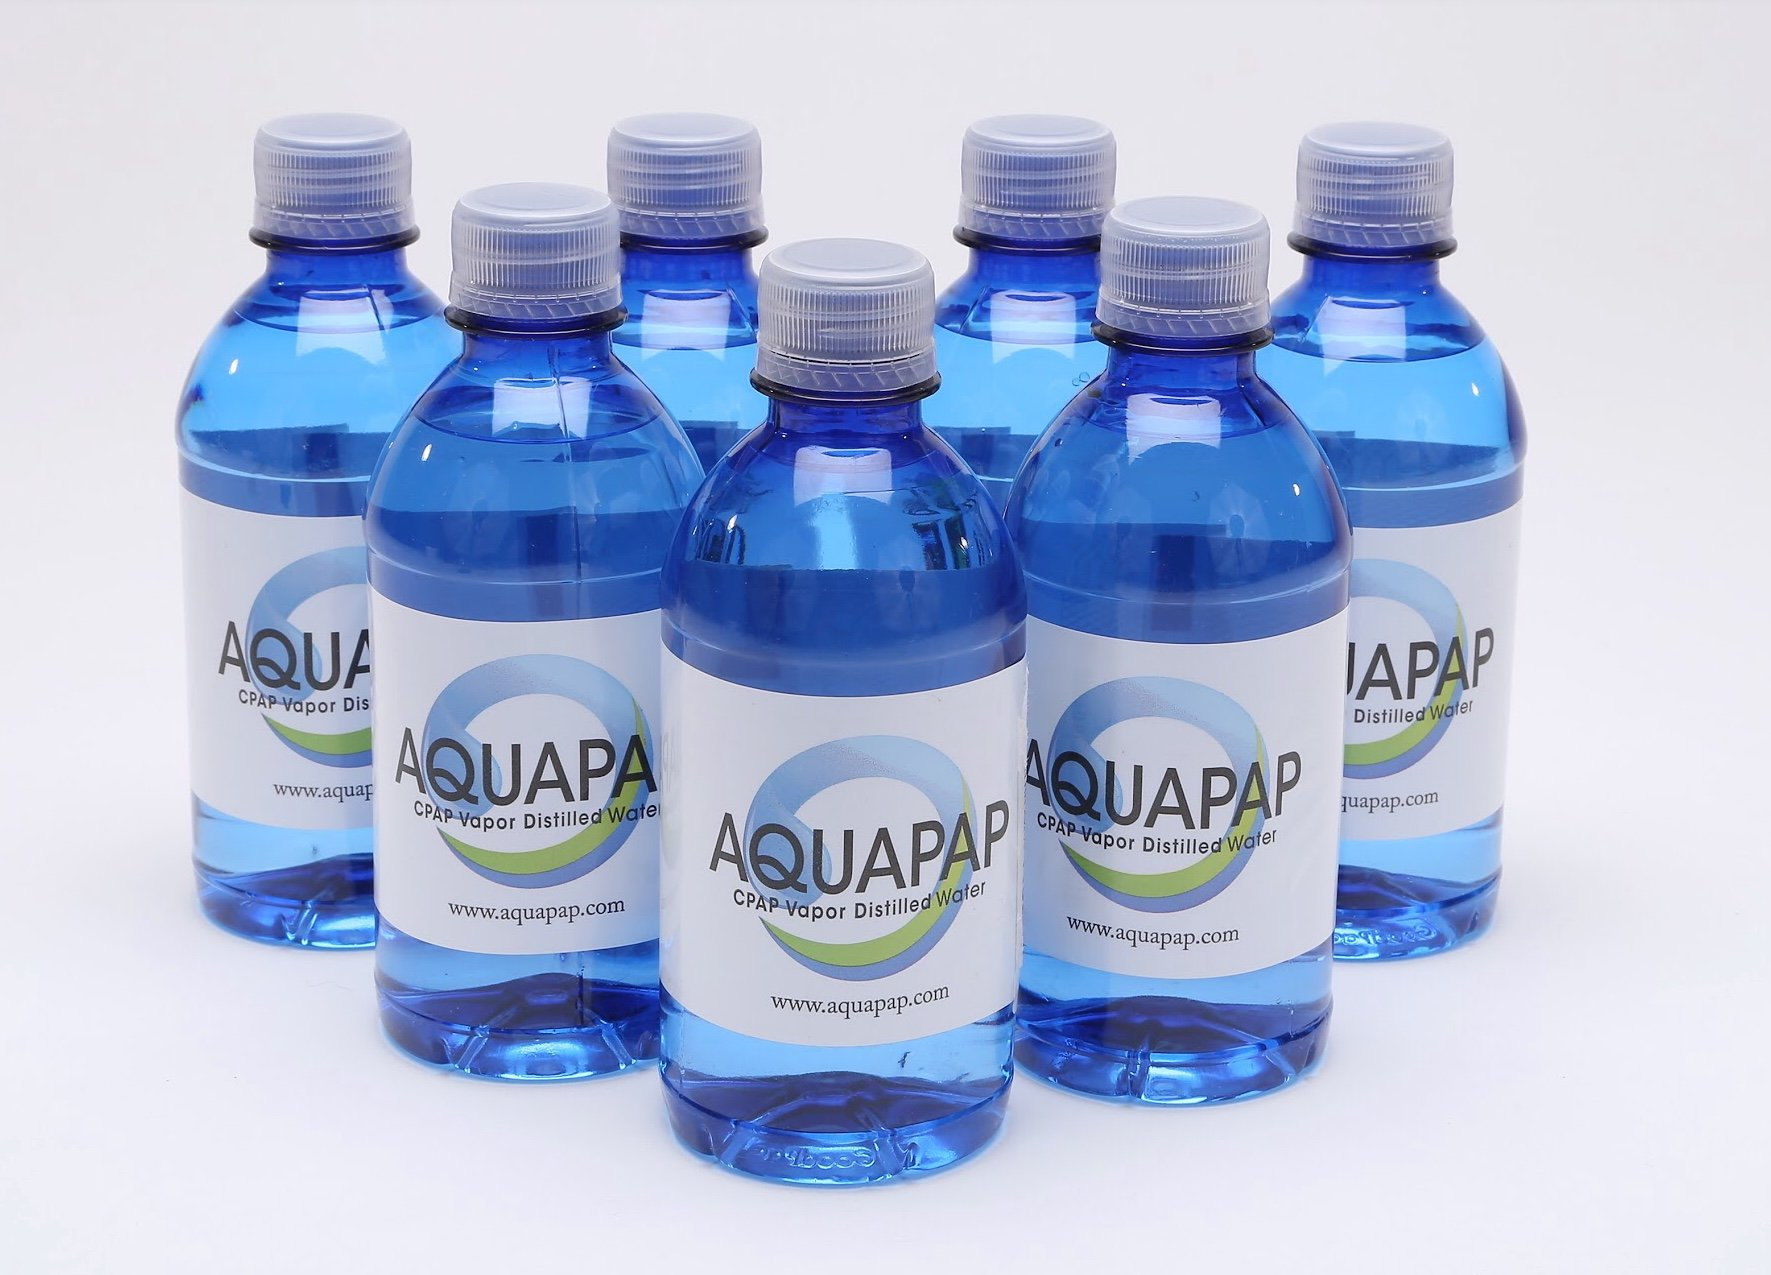 Aquapap CPAP water 7 x 12 ounce bottles 1 week supply by Aquapap